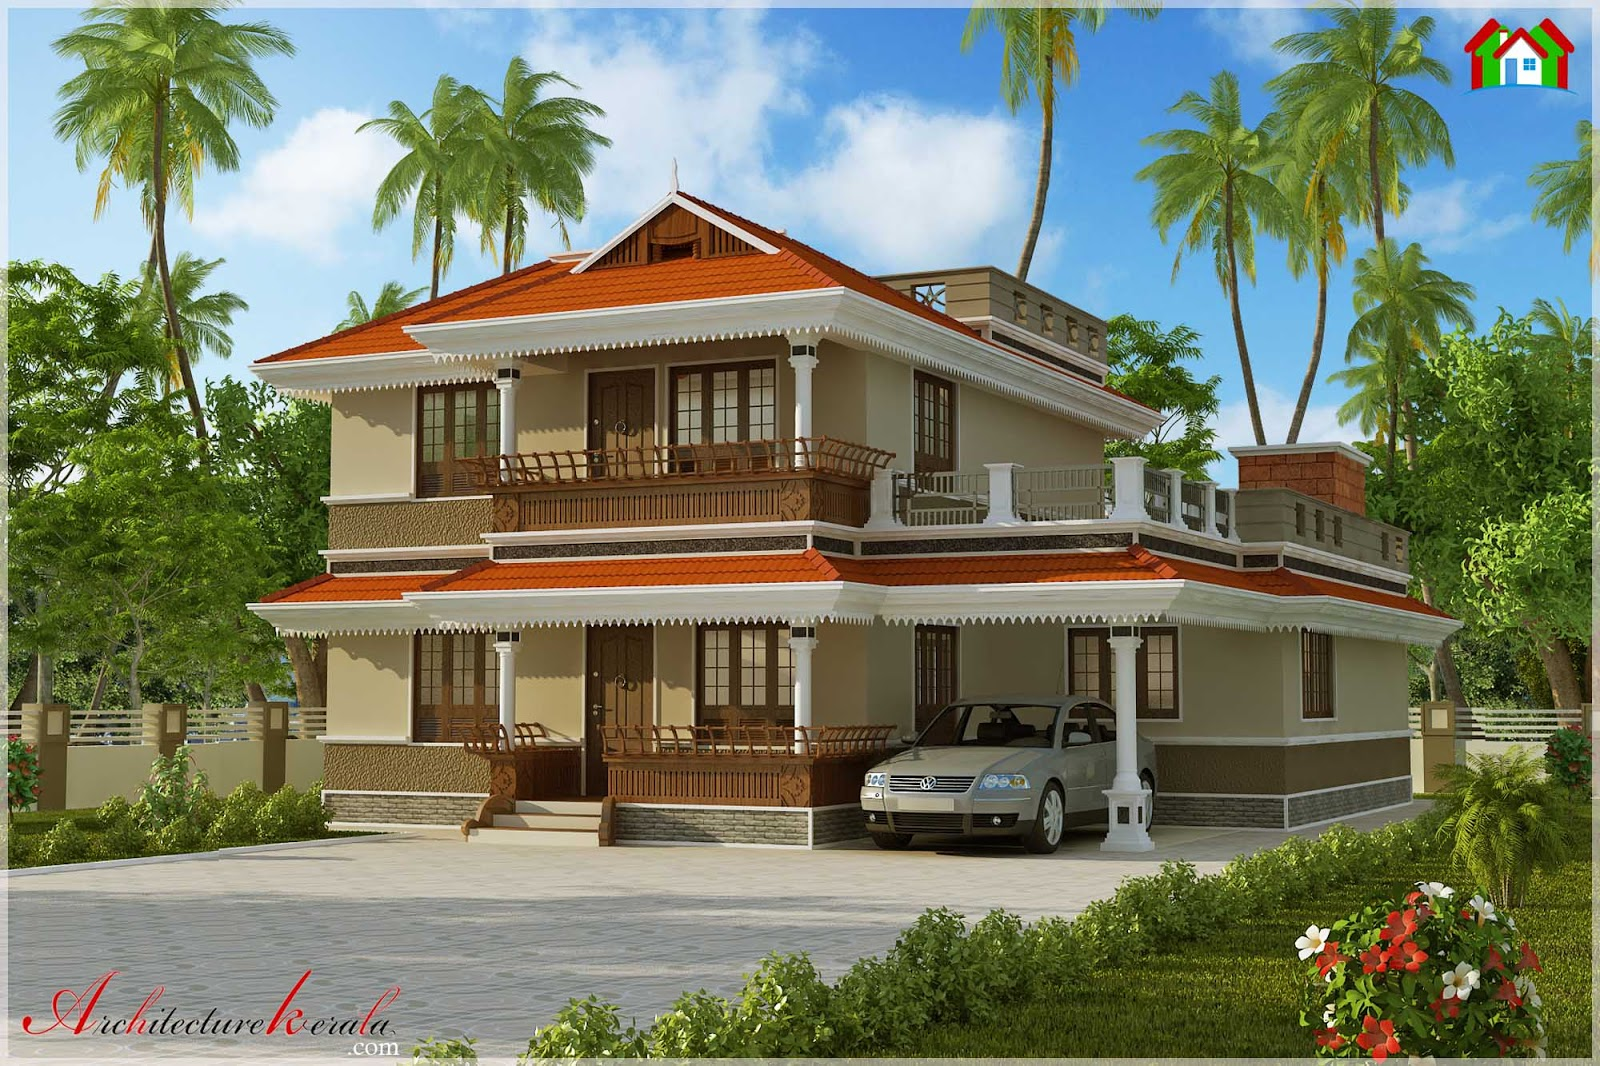 2500 square feet simple traditional style house elevation architecture kerala. Black Bedroom Furniture Sets. Home Design Ideas